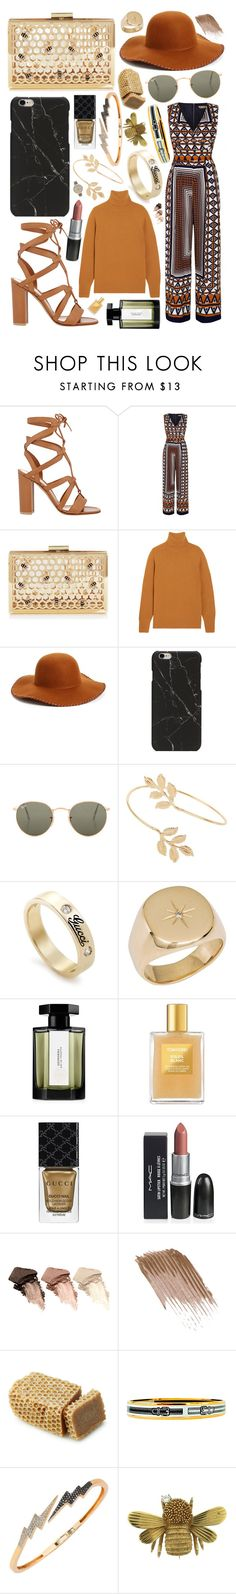 """""""End of summy"""" by foundout ❤ liked on Polyvore featuring Gianvito Rossi, Yumi, Chloé, Phase 3, Ray-Ban, Miss Selfridge, Gucci, Diamond Star, L'Artisan Parfumeur and Tom Ford"""